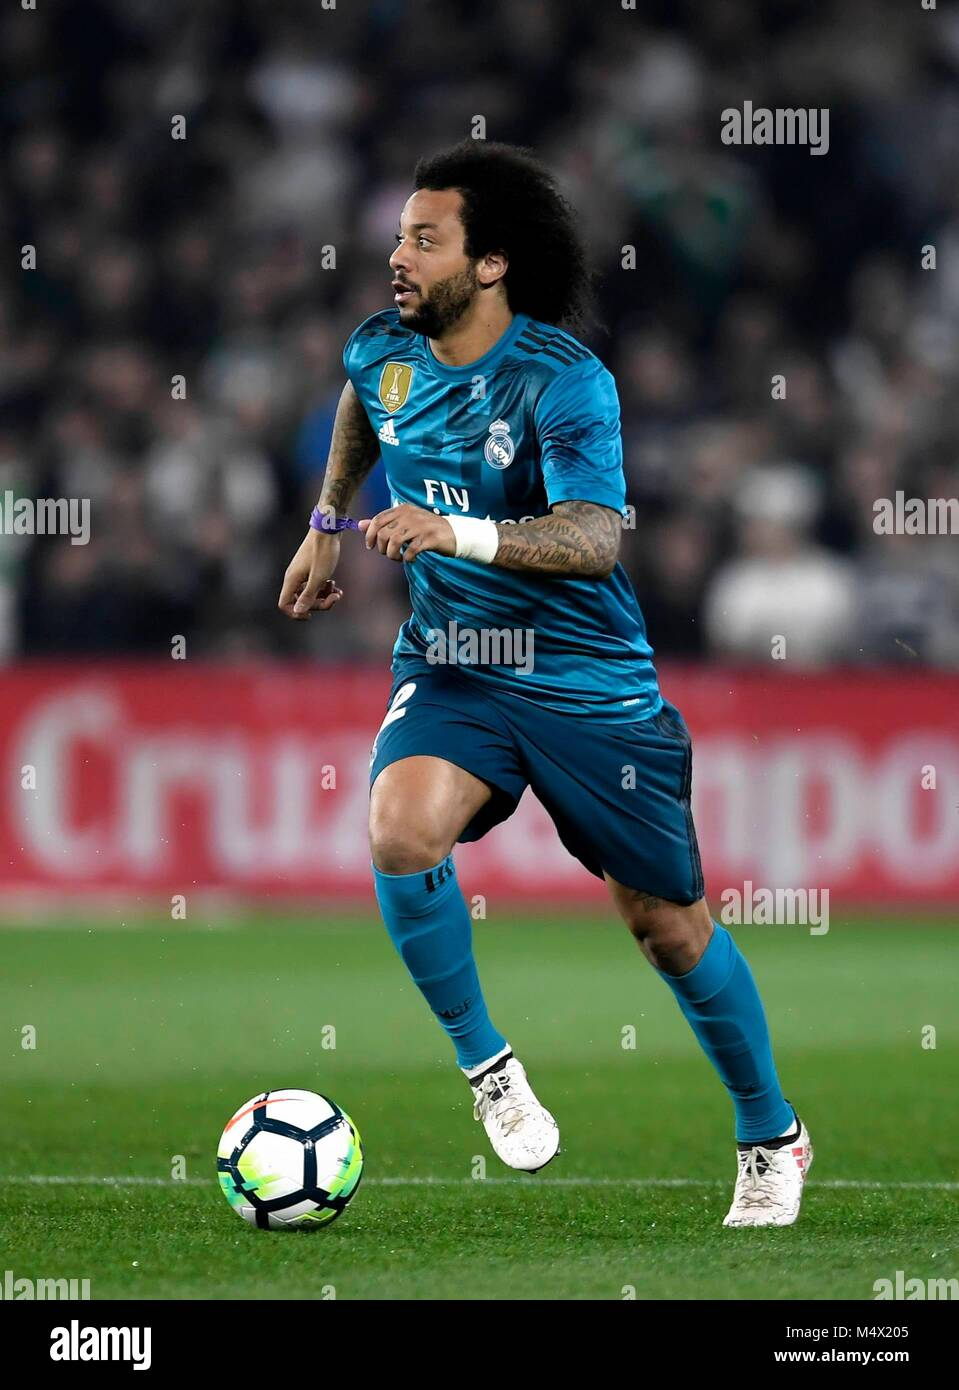 6338756ee7f The player Marcelo Vieira Da Silva of the Real Madrid during the football  match belonging to